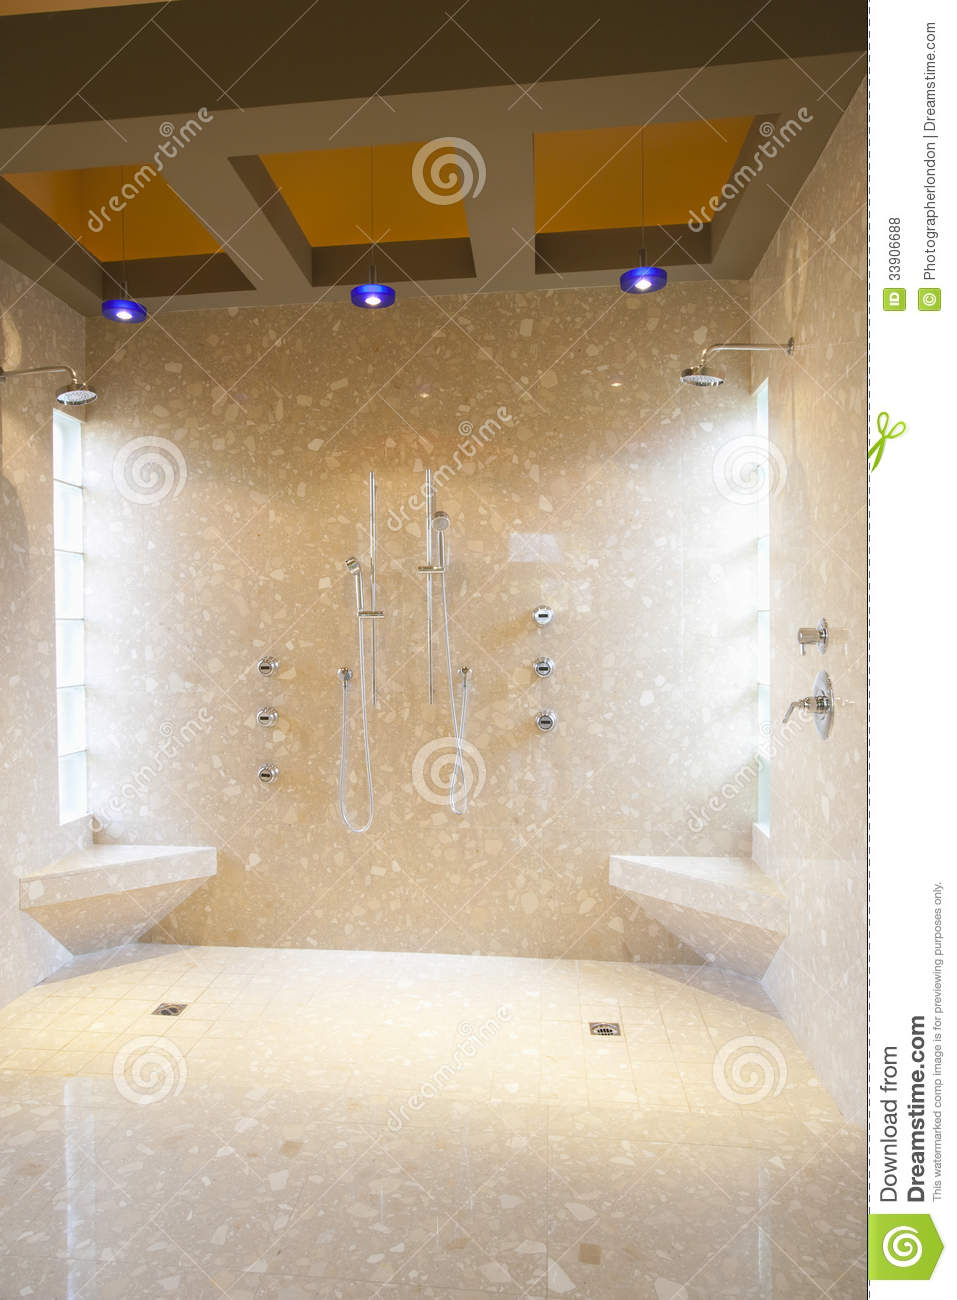 Bathroom With His And Hers Shower Heads Royalty Free Stock Photos  Image 33906688